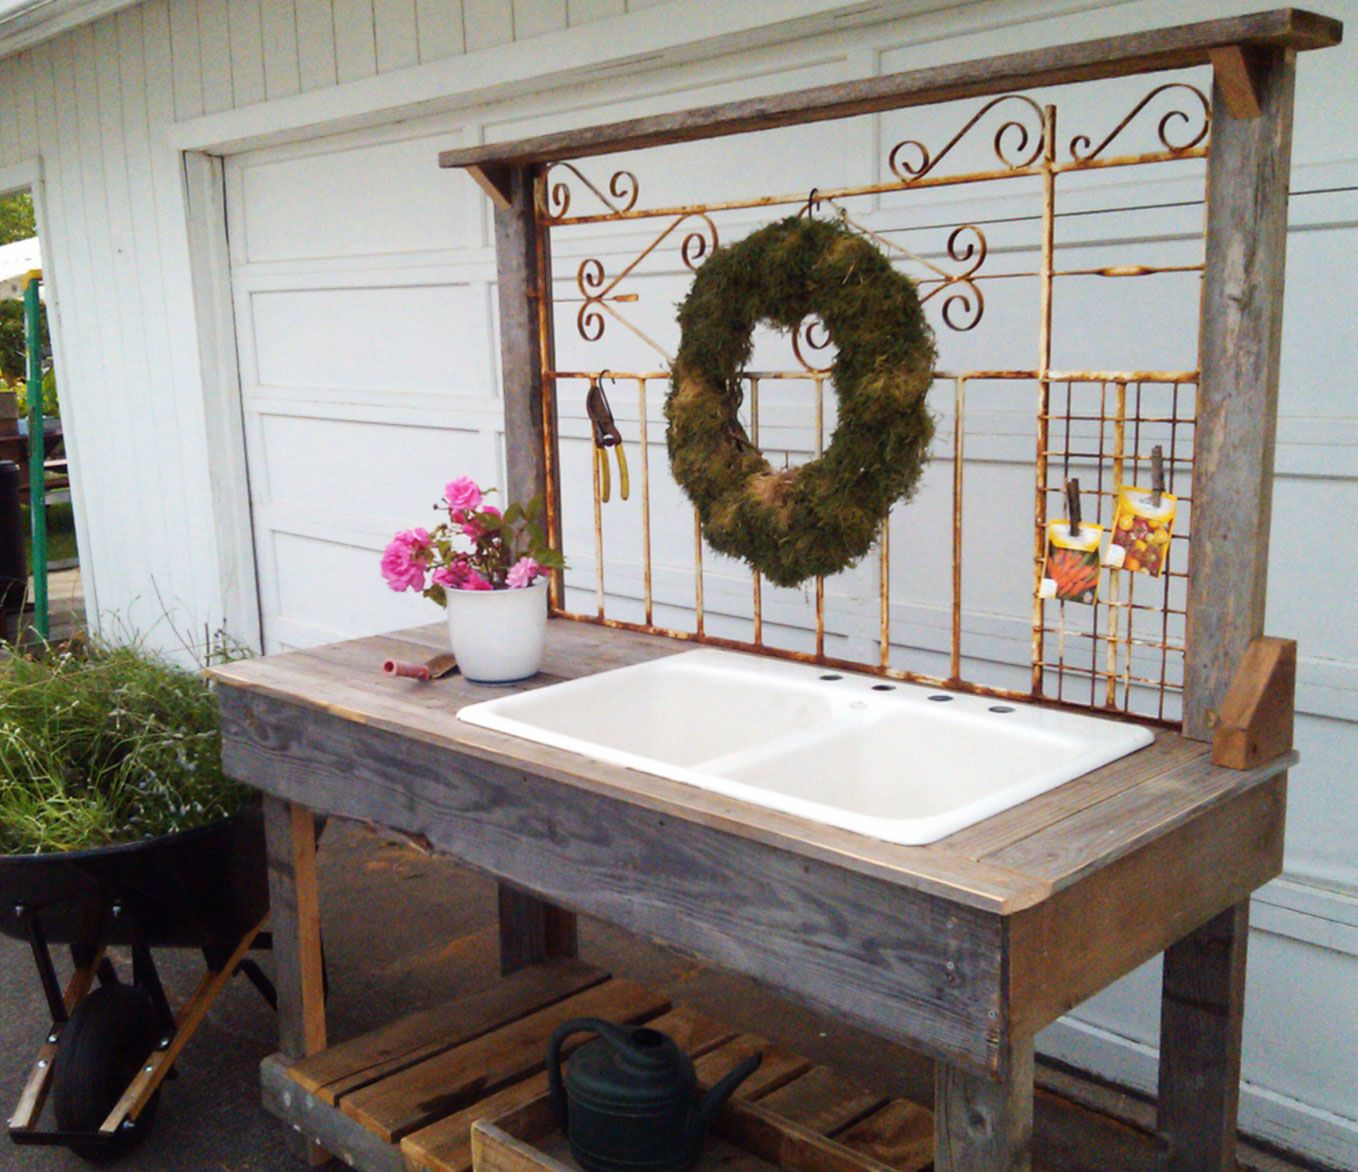 Potting Bench With Sink Rustic Potting Benches With Sinks White Iron Wrought With Sink